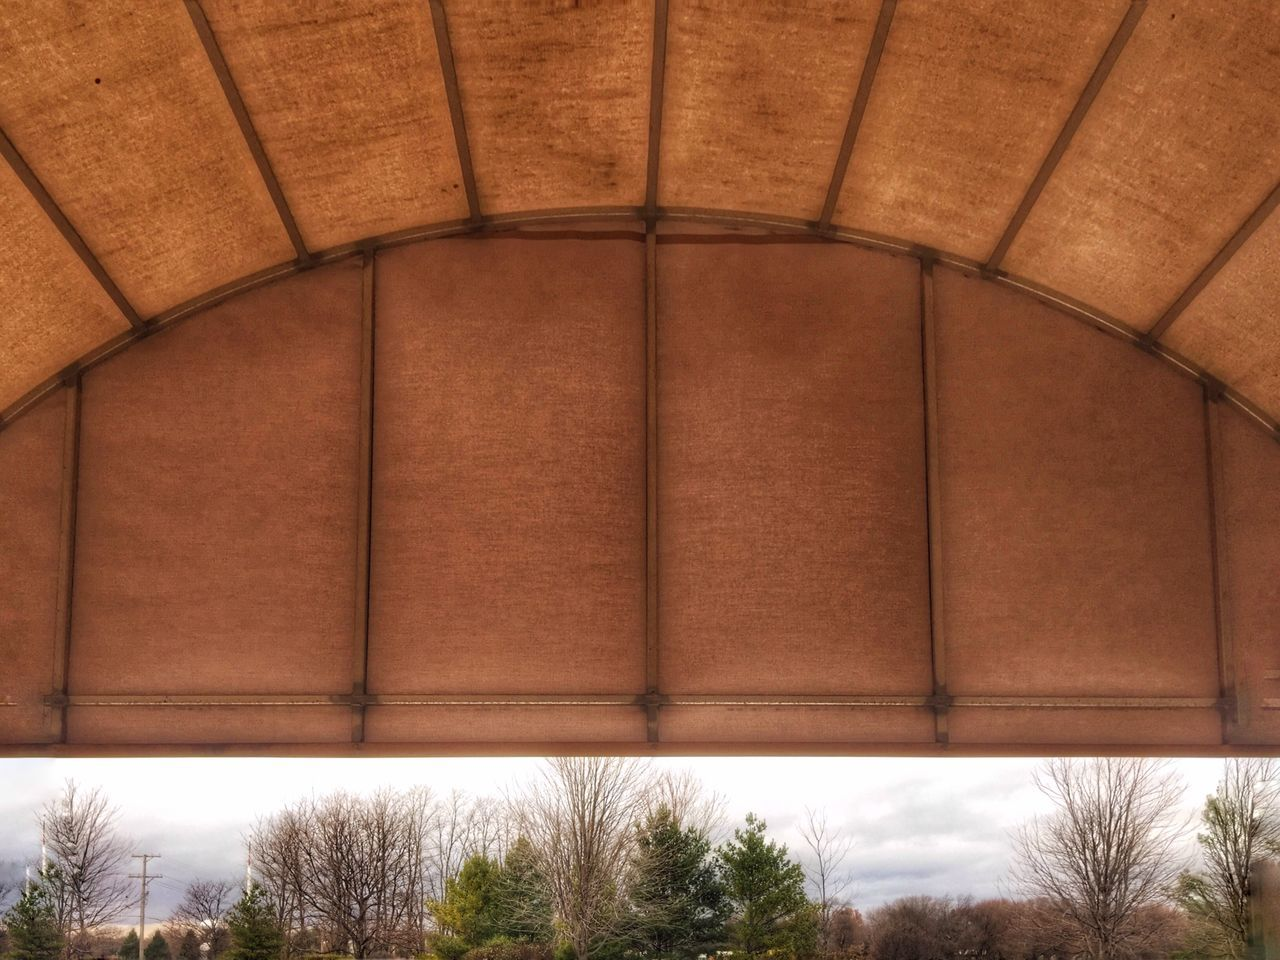 Exploring Style Built Structure The Week On Eyem Design Geometric Shape Architecture Pattern No People Trough My Eyes Low Angle View Day Outdoors Trees And Sky Fall Beauty Fall Colors My Own Style Of Beauty Canopy From Inside Out Oswego, IL